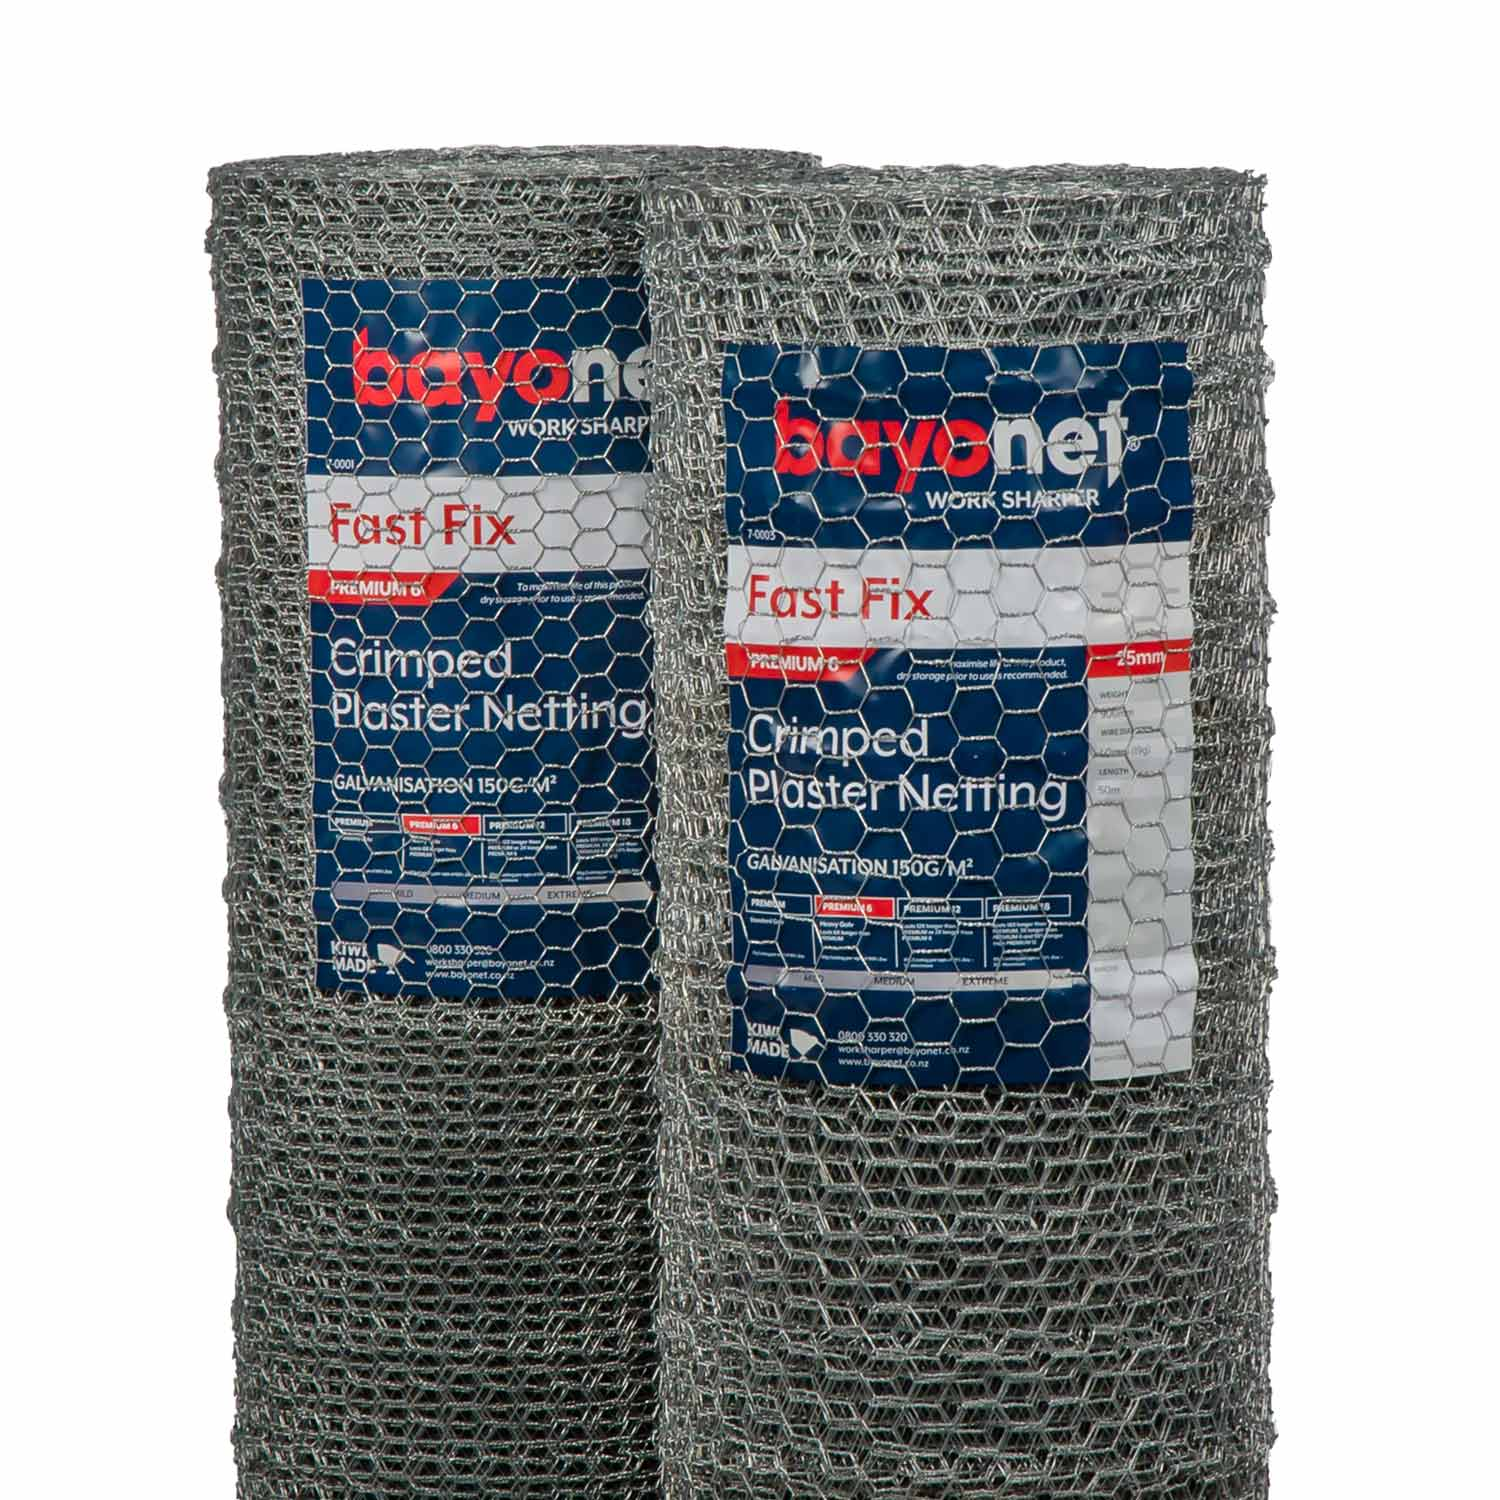 Fast Fix Hex Crimped Plaster Netting group